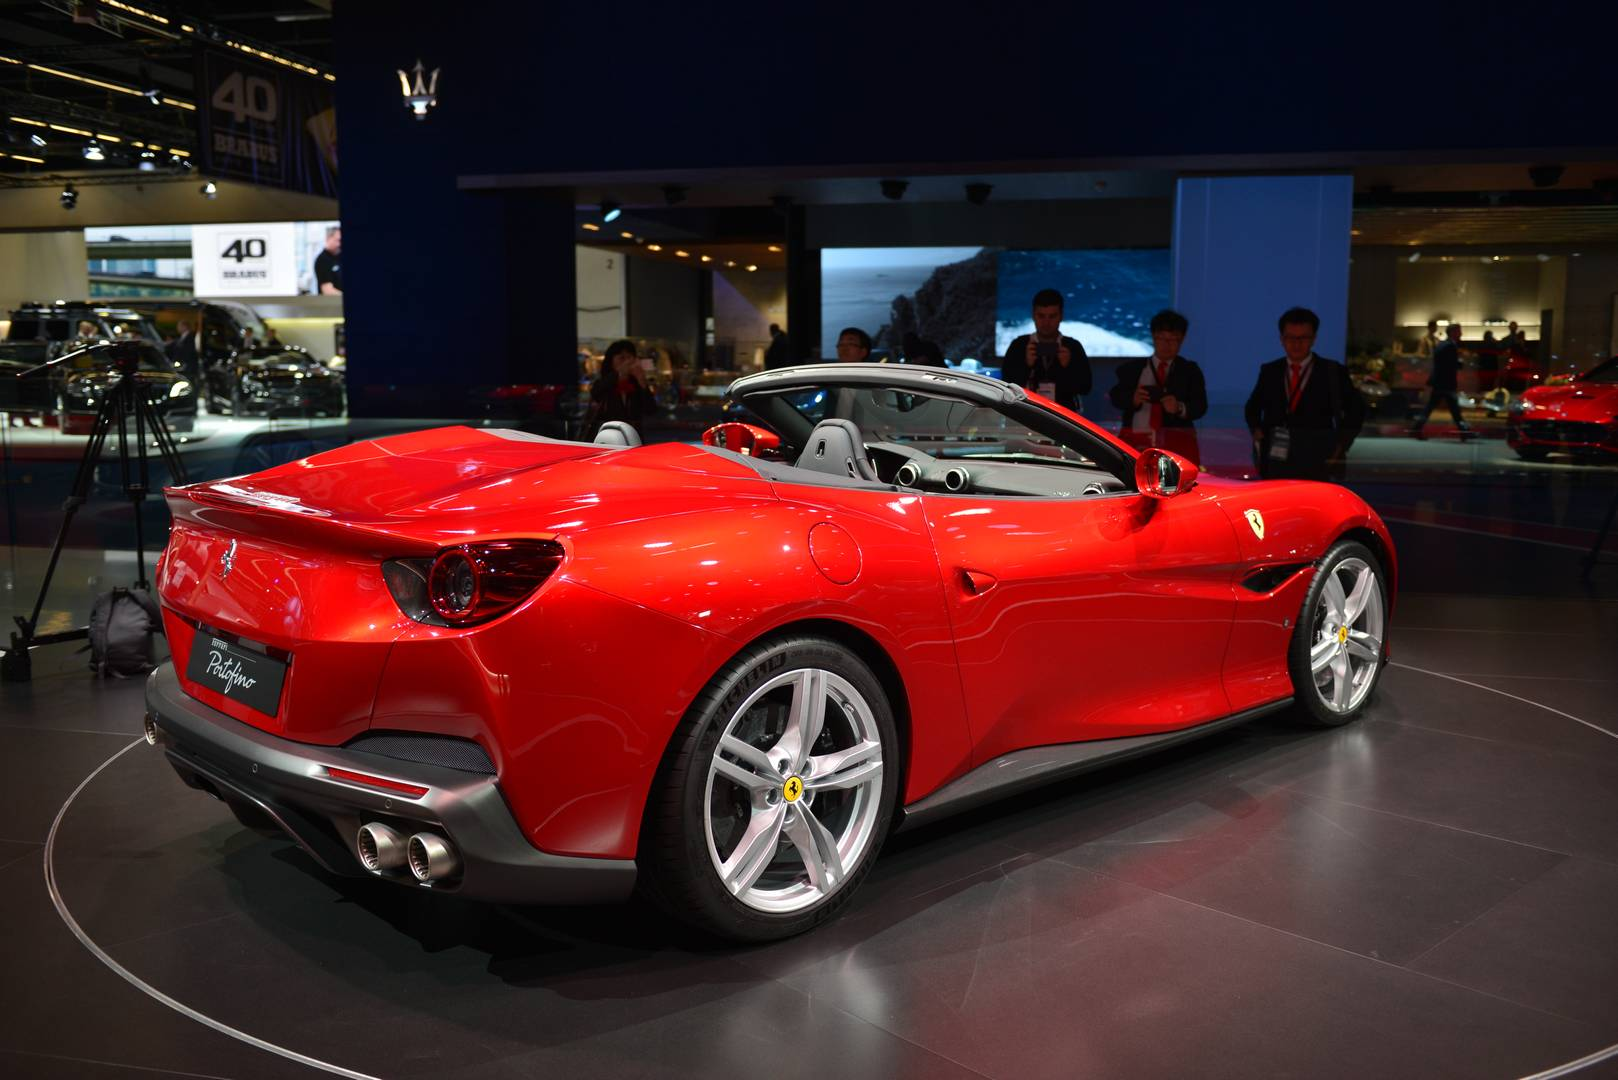 Lamborghini And Ferrari Hybrids Yes But All Electric Cars A No For Now